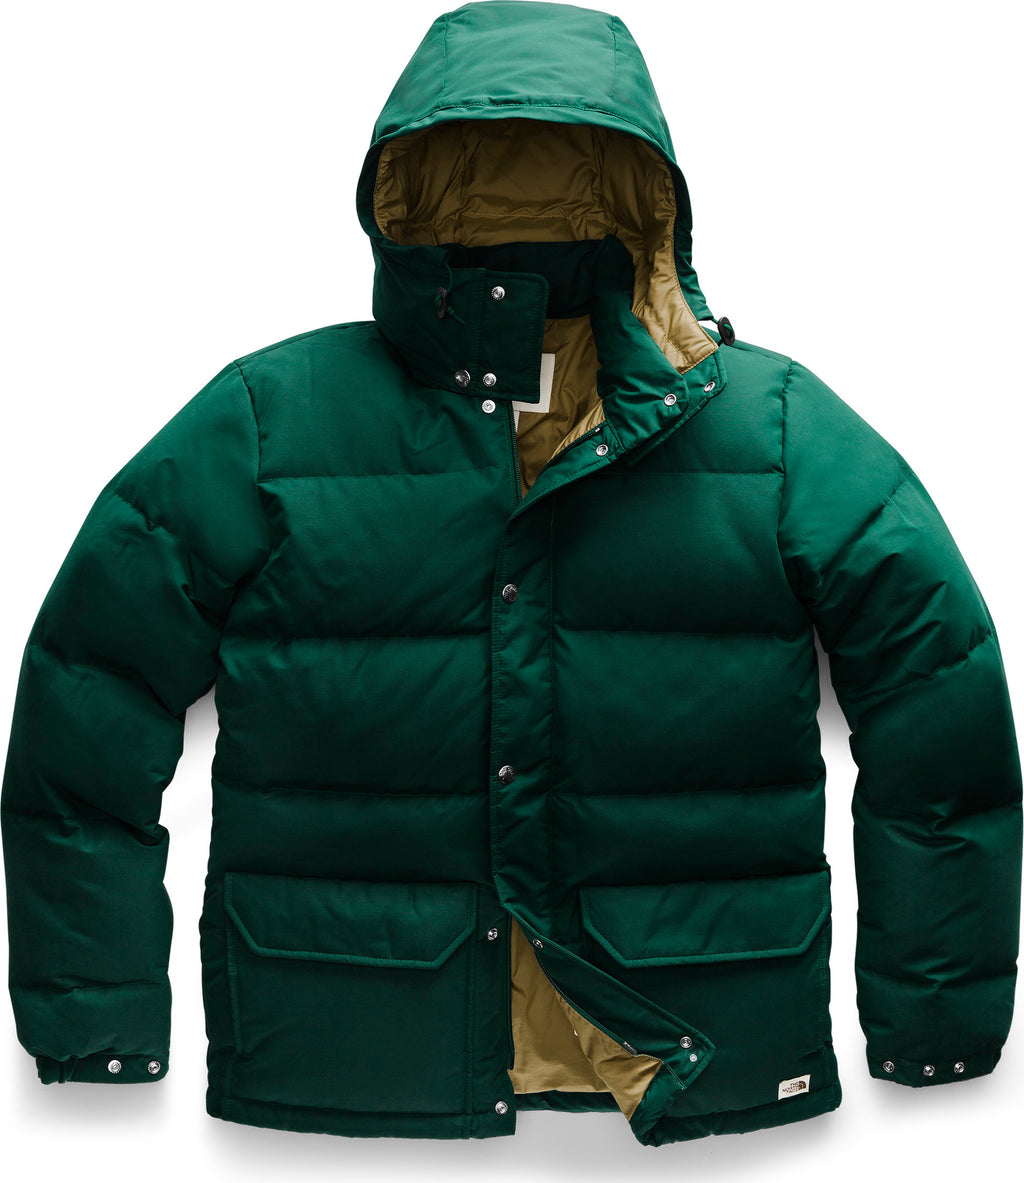 North The Sierra 3 Homme Manteau Face Down 0 l1FKJc